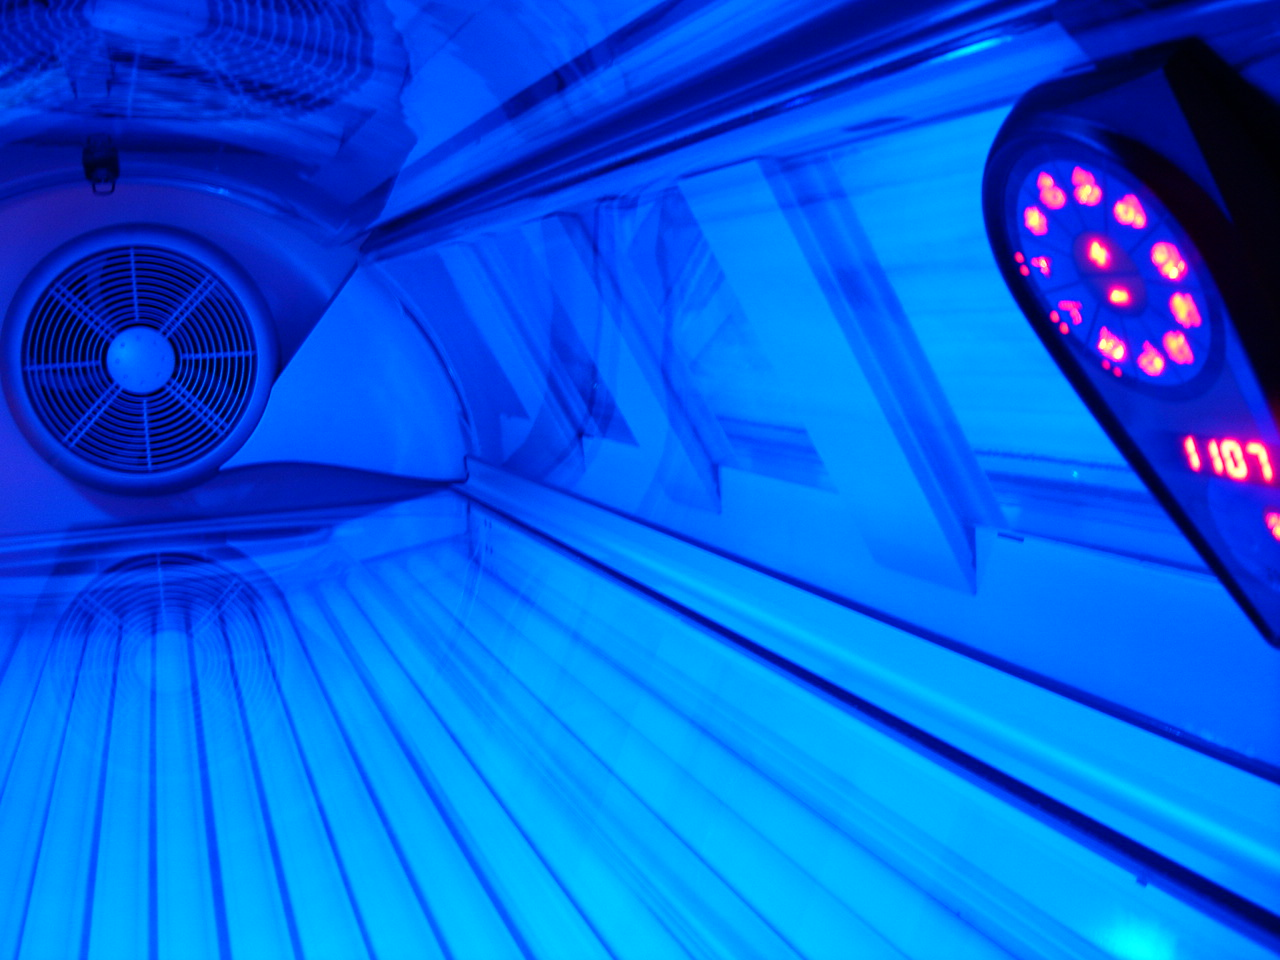 The Best Tan Company Palm Beach Tan Vs Sun Tan City